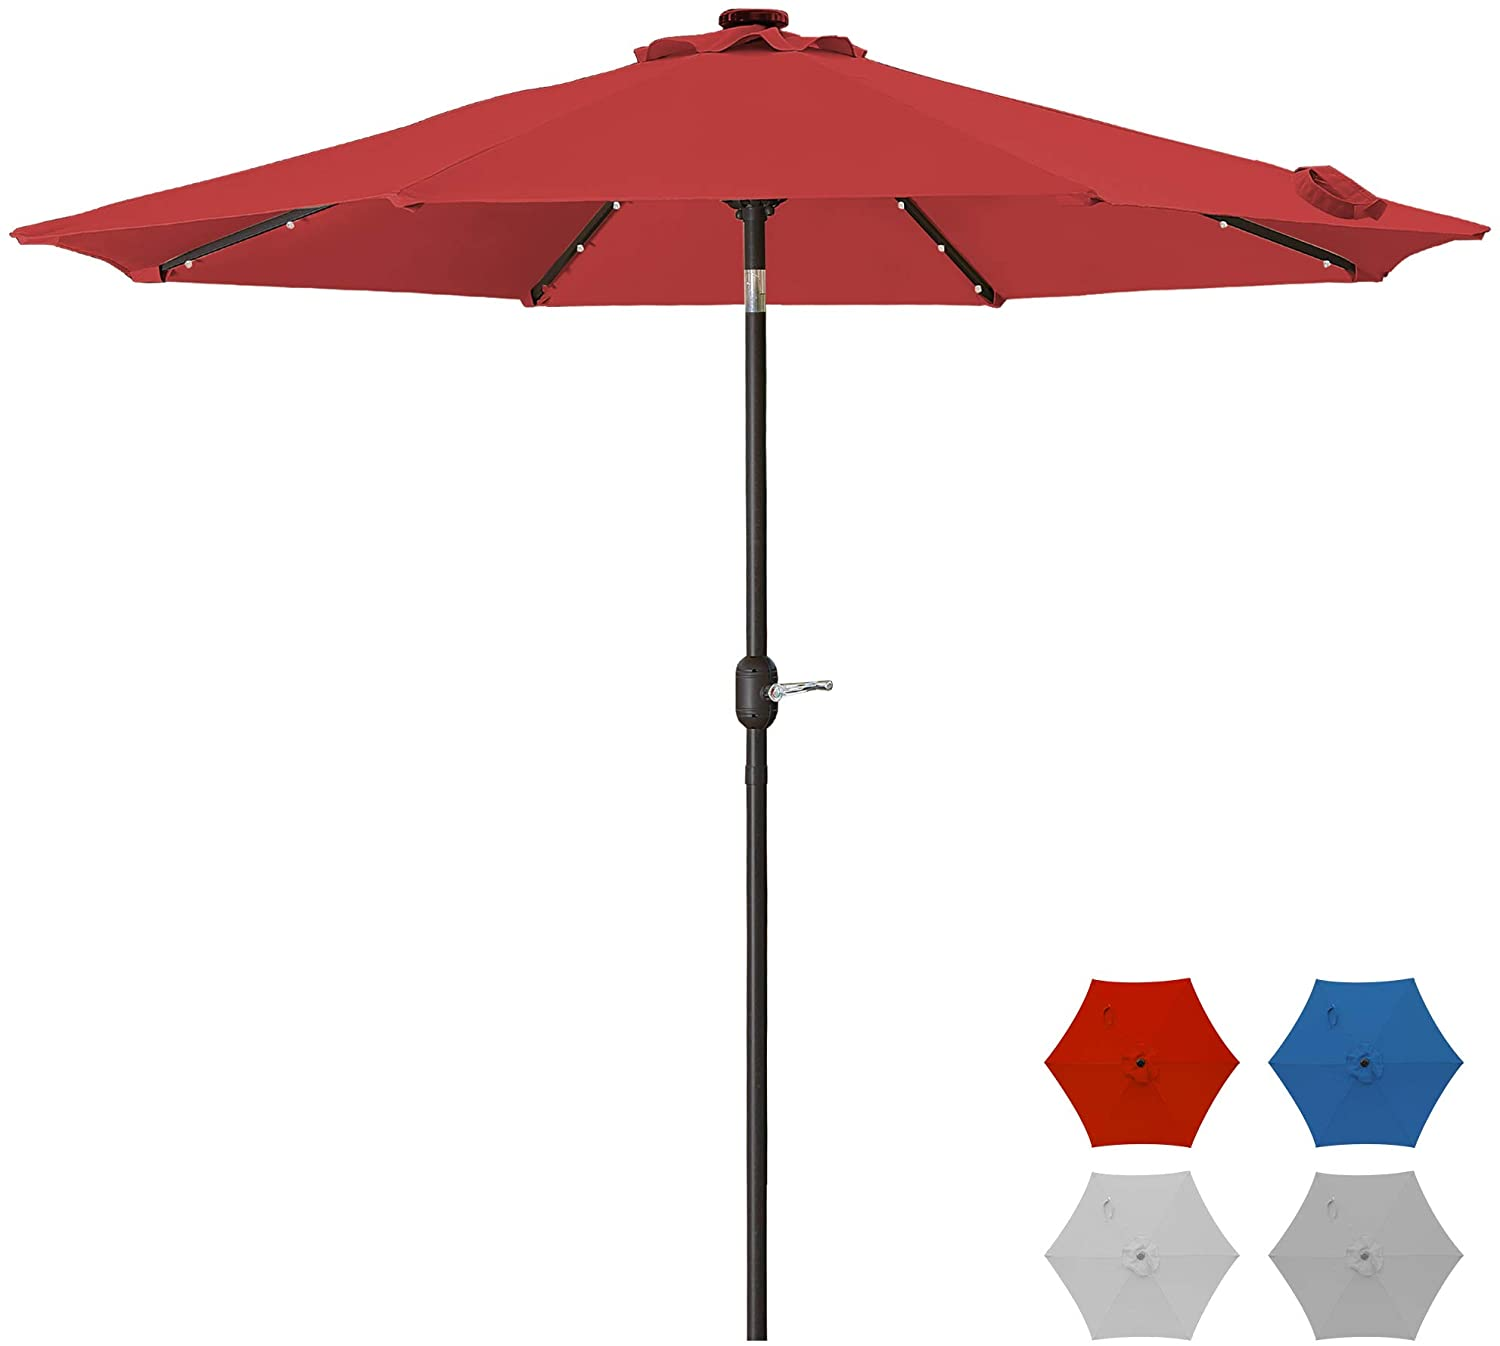 9 Ft Patio Solar Umbrella Outdoor Market Table Umbrella with 32 LED Lighted, Crank, 8 Ribs, Polyester Canopy (Red)